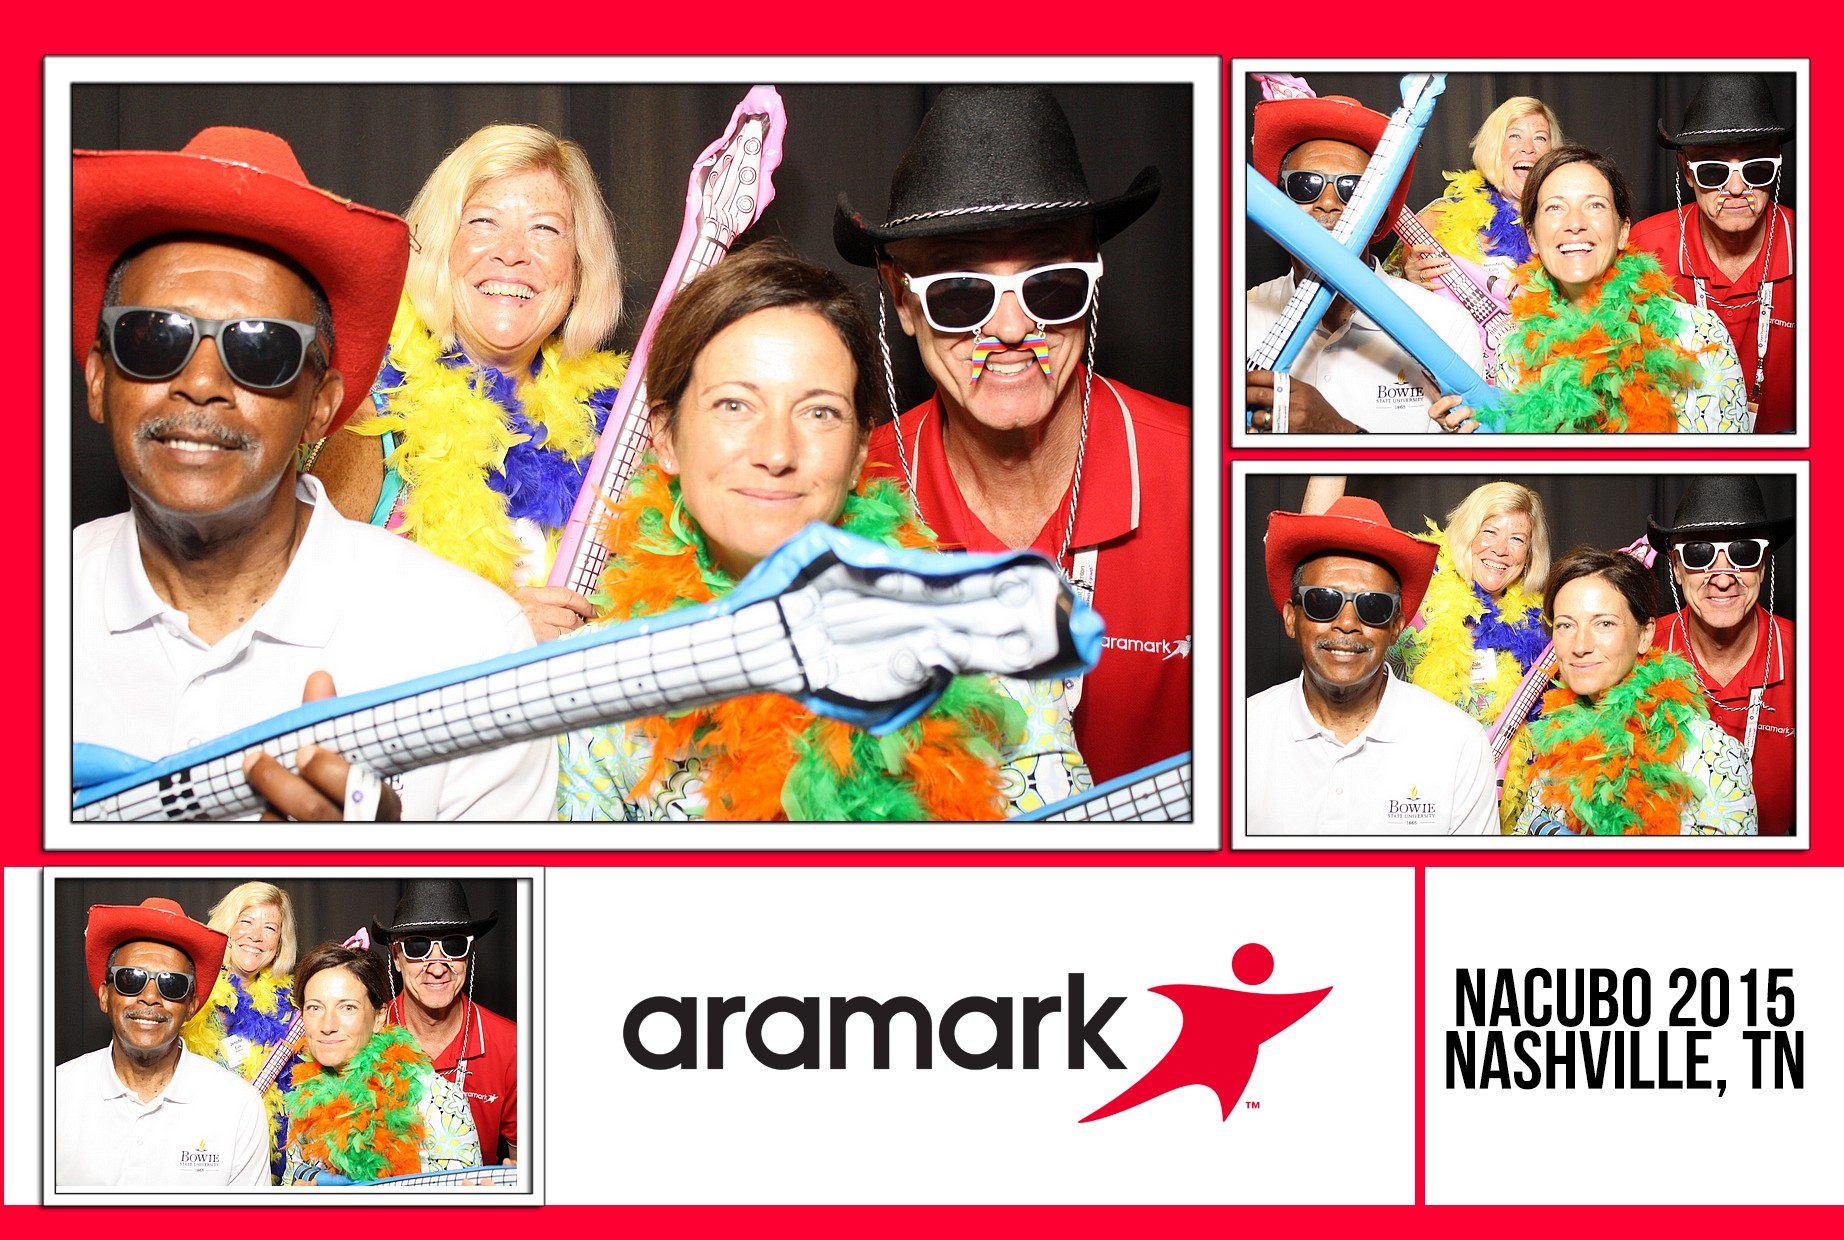 We recently did an event for Aramark at LP Field! Our photo booths and live band were the perfect additions to add a bit of fun to their event!